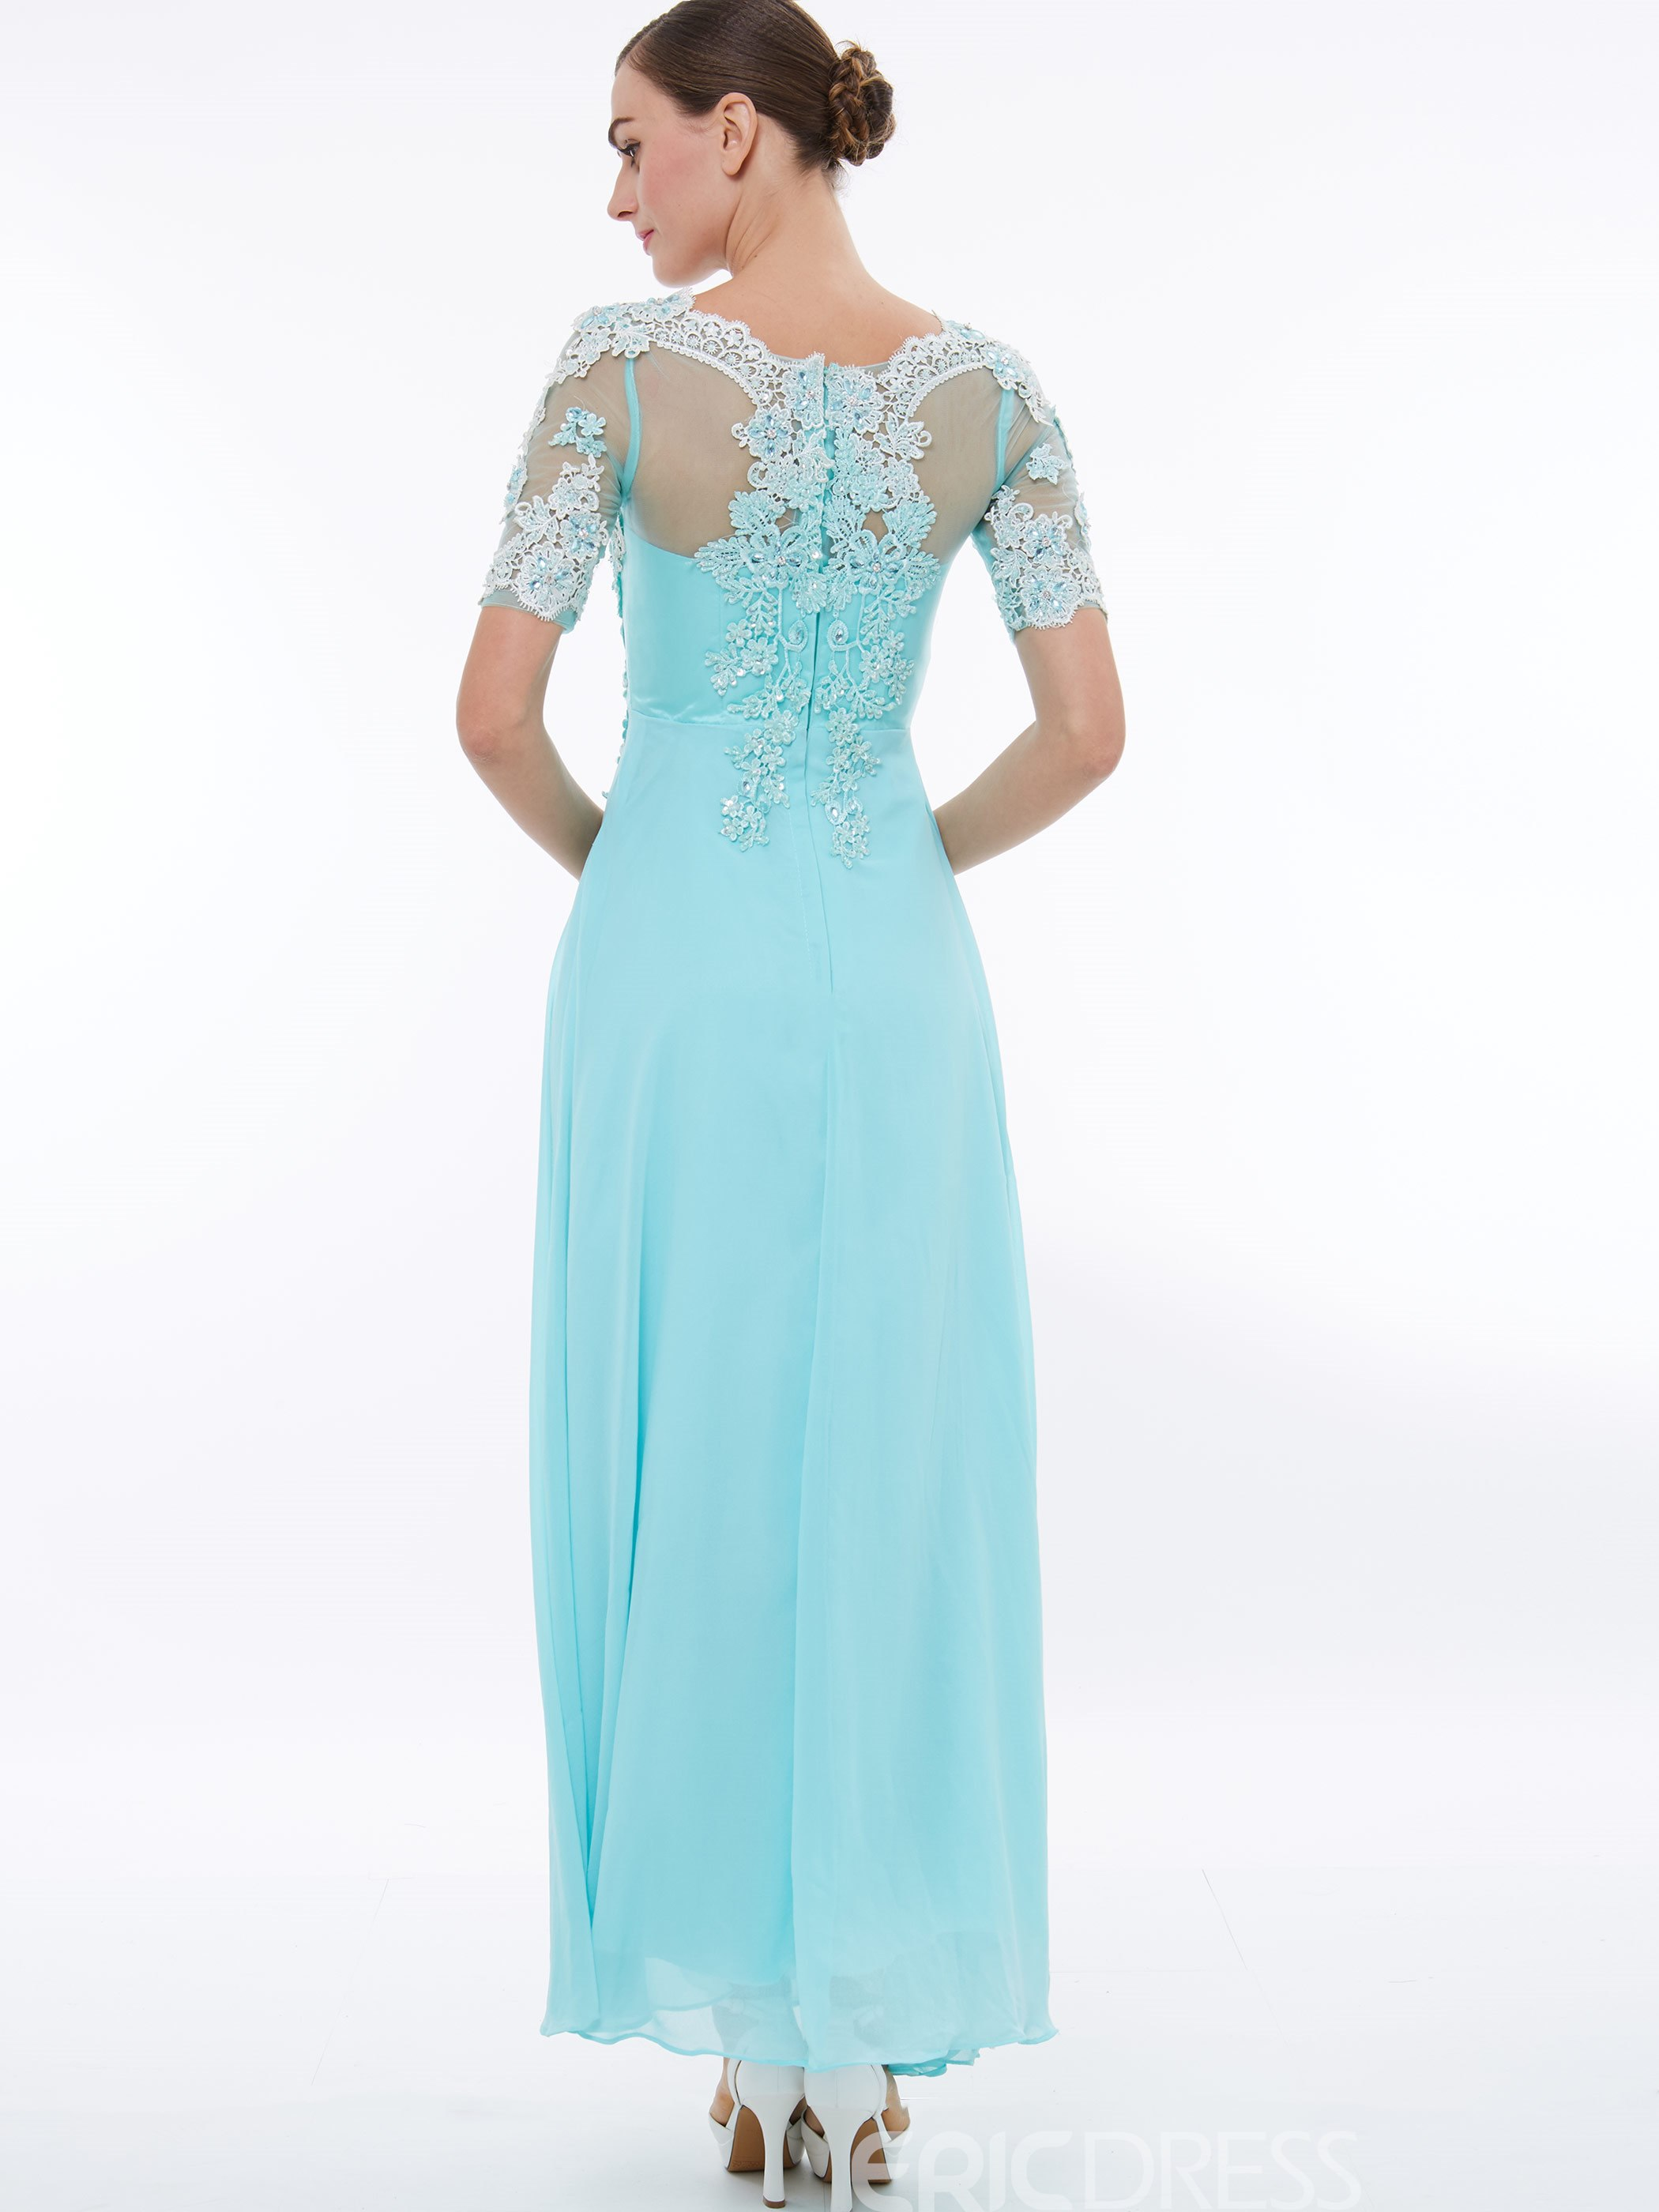 Ericdress A Line Short Sleeve Chiffon Prom Party Dress With Lace Applique